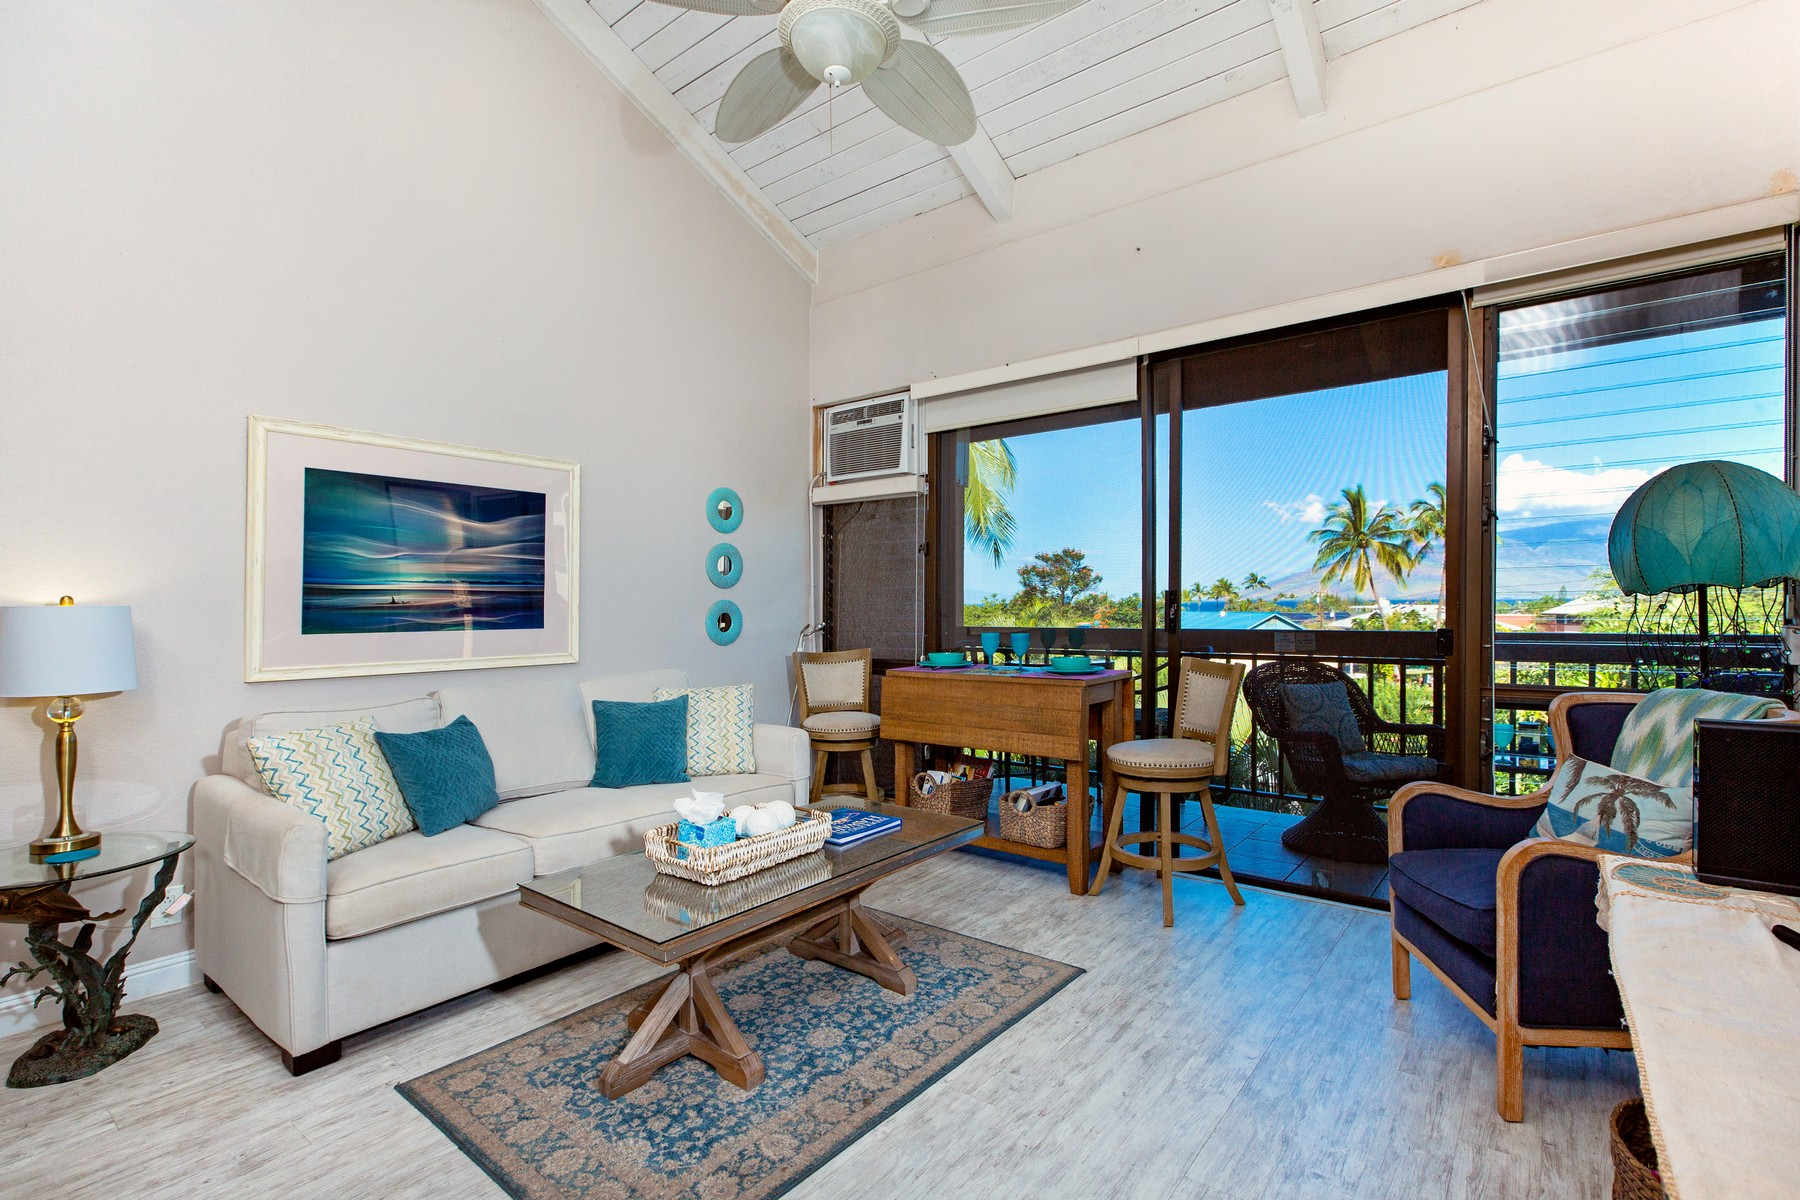 Condominiums for Sale at Affordable Luxury in South Maui 2191 S Kihei Rd, Maui Vista 3422 Kihei, Hawaii 96753 United States